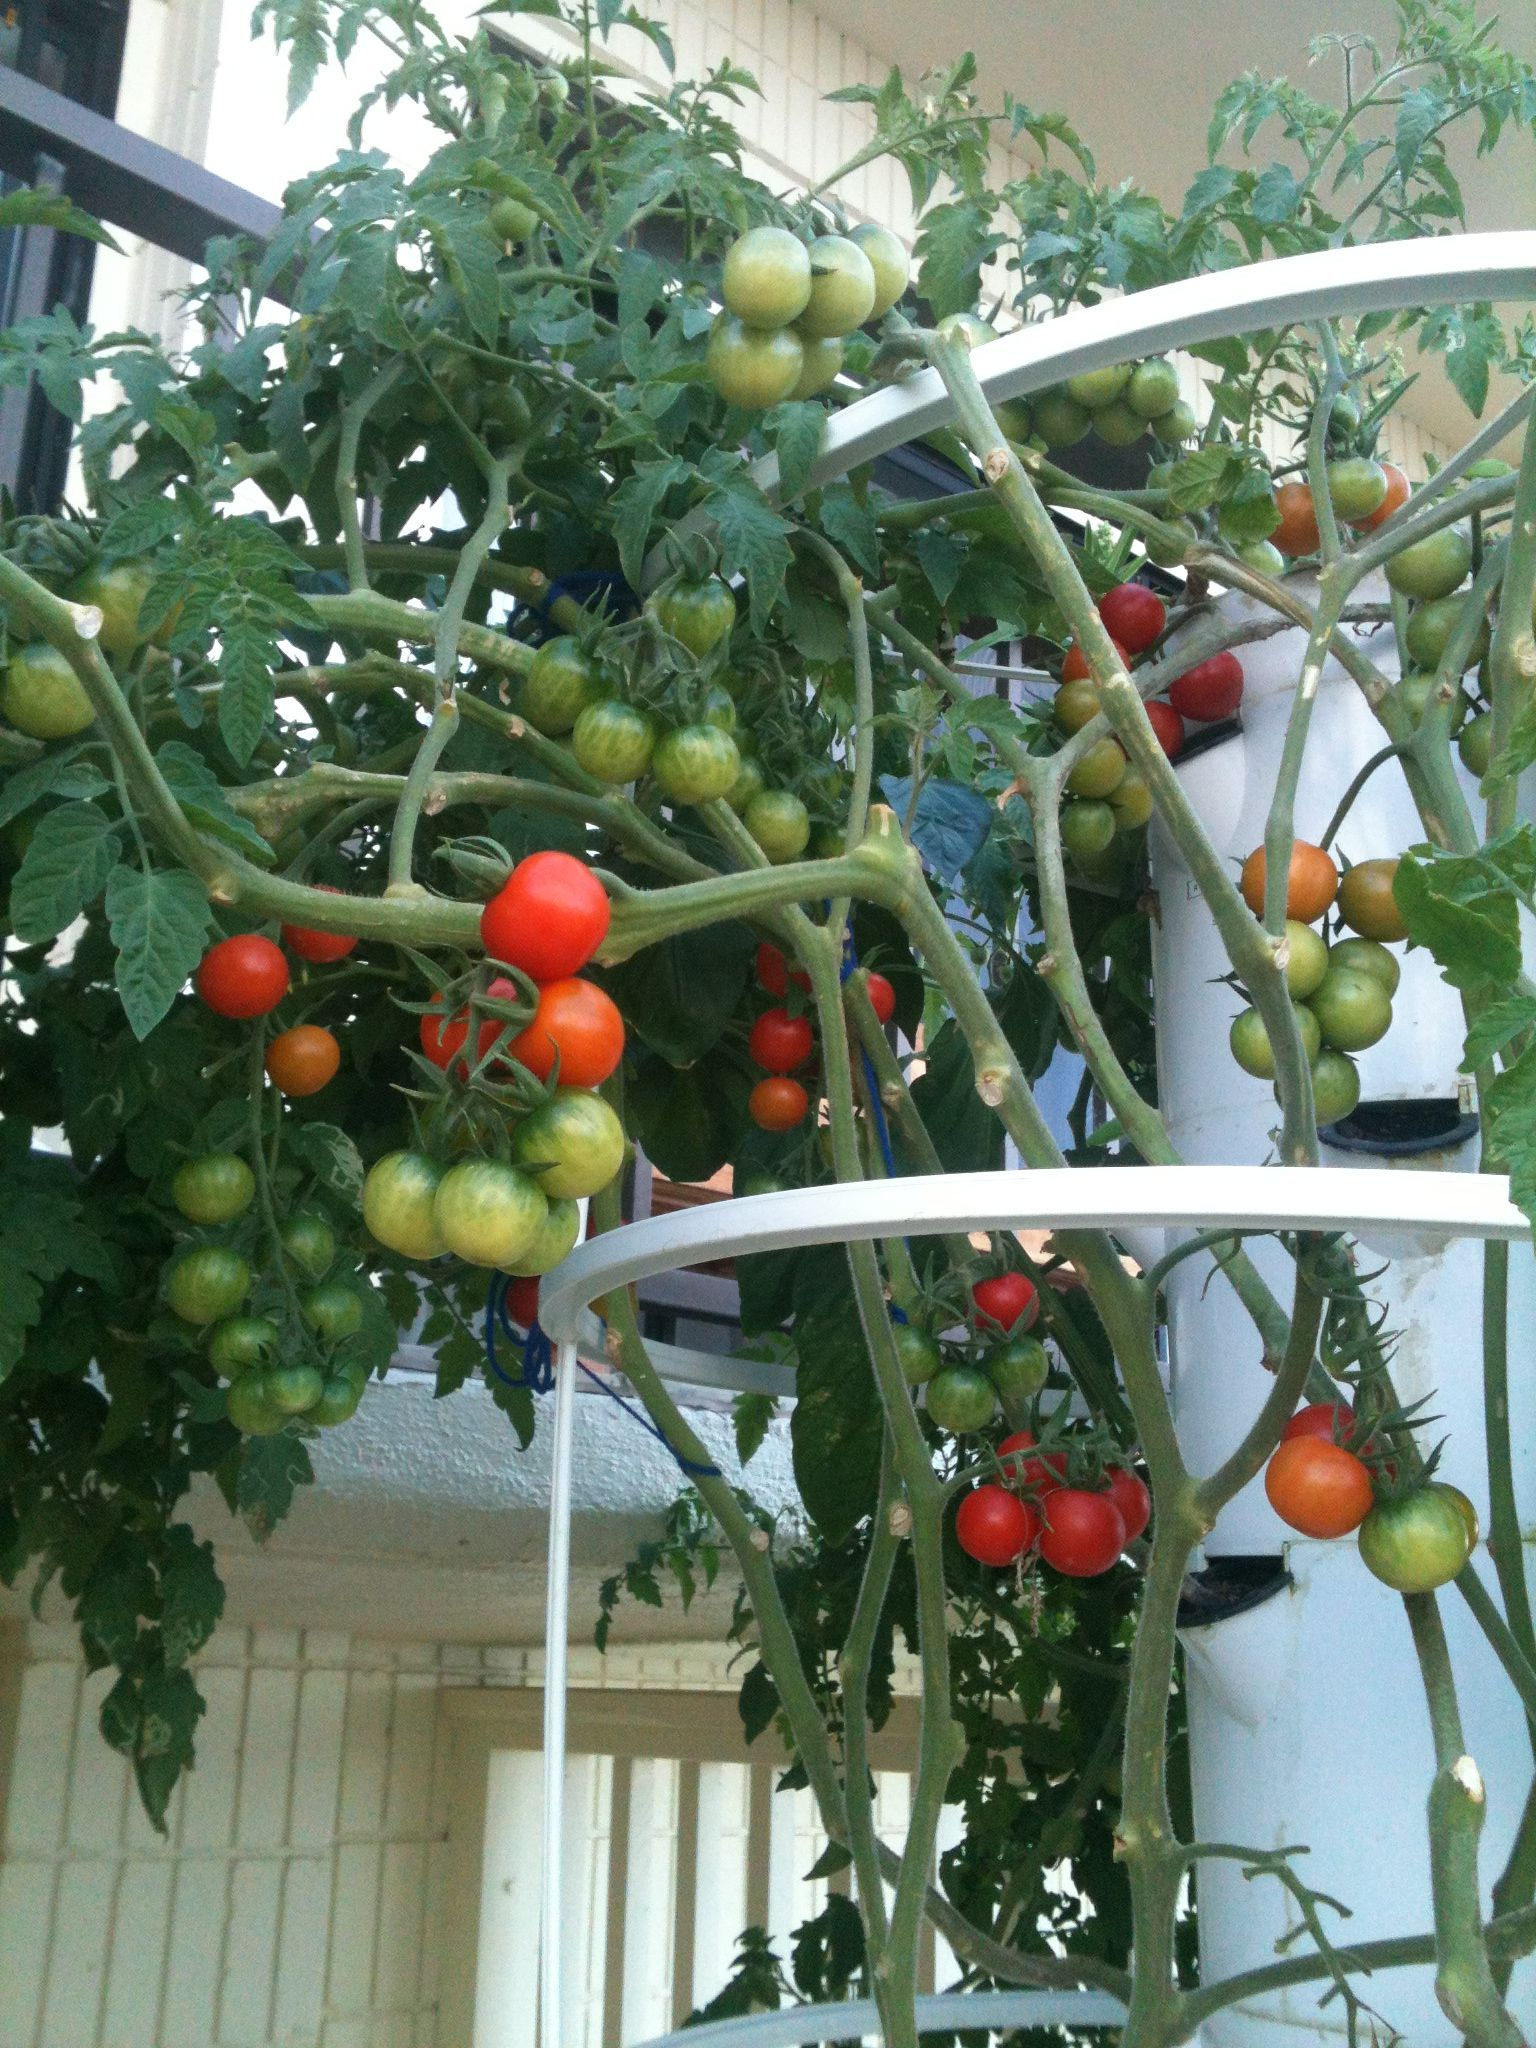 Pruning Tomato Plant Interested In Growing Food With The Tower Garden Contact Me Spa Hawaii Rr Com With Images Cherry Tomato Plant Pruning Tomato Plants Tomato Garden